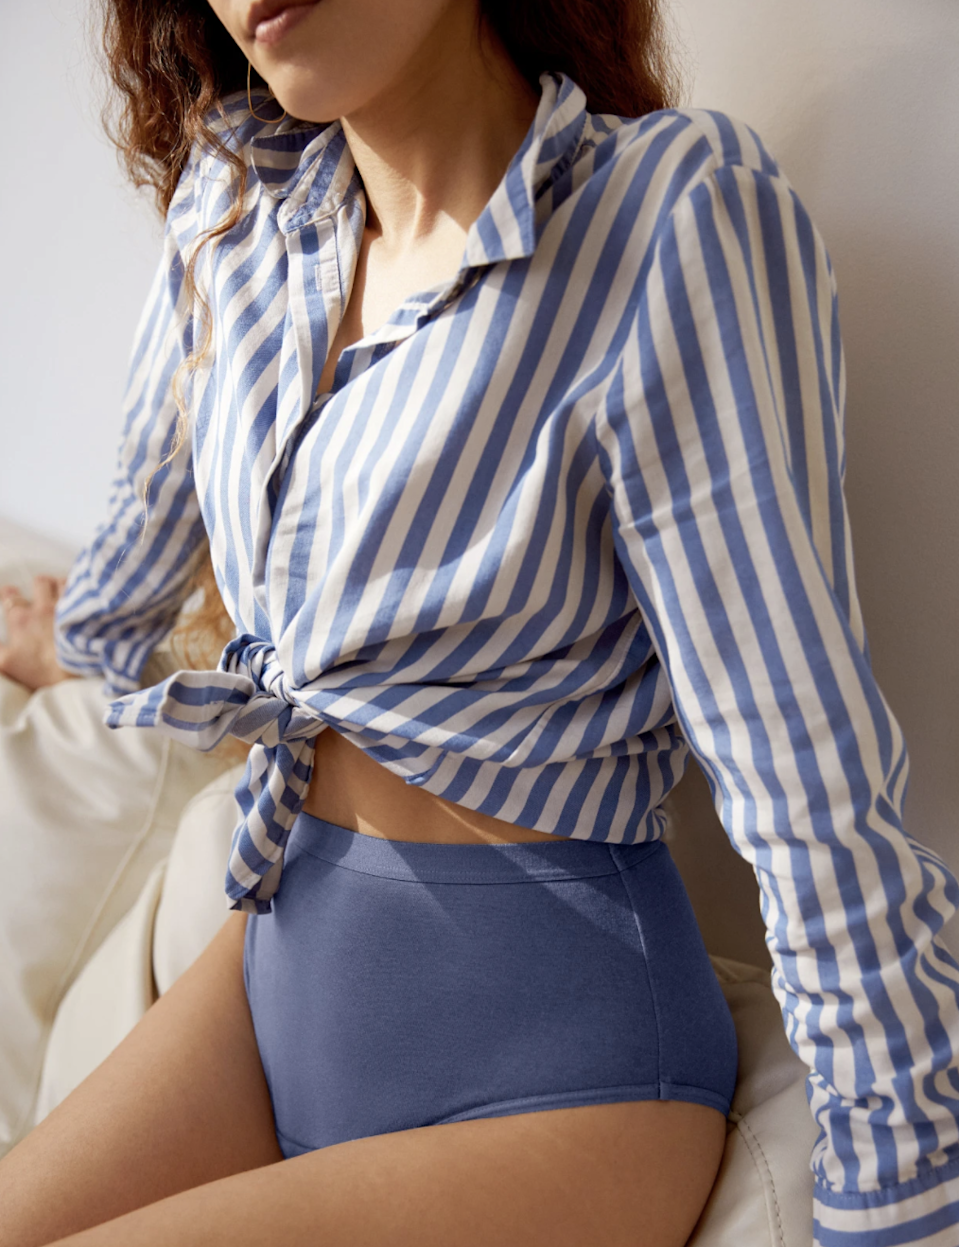 "<p>Another must-have from Knix: The brand's latest launch, designed for cotton lovers on their heaviest days.</p> <p><strong>Key selling points:</strong> The new Cotton Modal Super Leakproof Underwear is here to keep you confident and secure on super-heavy days, and holds up to eight tampons' worth of liquid. Despite being the most absorbent option from the brand, it's still breathable, thanks to a cotton modal and spandex multilayer design. Plus, modal is an eco-friendly fabric made from regenerative plants and requires less water and fewer chemicals during production—so the sustainable shopper can feel good about using fewer tampons <em>and</em> less water.</p> <p><strong>What customers say:</strong> ""I wasn't sure about these because of the rise and my shape, but these are so comfy and stayed put! The band is super helpful, it feels like an extra level of security that these aren't going to shift in the night. And I love the breathable cotton to sleep in. Great bum coverage, and I don't notice the pad at all! I could wear these all day long easily."" —<em>Kamora, reviewer on</em> <a href=""https://cna.st/affiliate-link/4cnpy7ZU4zypFCb1B5nYwzuFWzQ8R8ehqnmyRzyTs4EDdskm9AYHr3oAqhG3opVLdBYmdNCUECozGVit2FigW1w44b7WKiLK5tXqZ9GtSvmMVnr1ABRQCVHyP8B5d35ywfu73ZjC2VFKGG9QXEpNZVN3Bxp7UifpEDKYKczgtHU?cid=60410fcf8a84910f14a6f73f"" rel=""nofollow noopener"" target=""_blank"" data-ylk=""slk:Knix"" class=""link rapid-noclick-resp""><em>Knix</em></a></p> $35, Knix. <a href=""https://knix.com/collections/cotton-modal/products/cotton-modal-super-leakproof-high-rise-indigo"" rel=""nofollow noopener"" target=""_blank"" data-ylk=""slk:Get it now!"" class=""link rapid-noclick-resp"">Get it now!</a>"